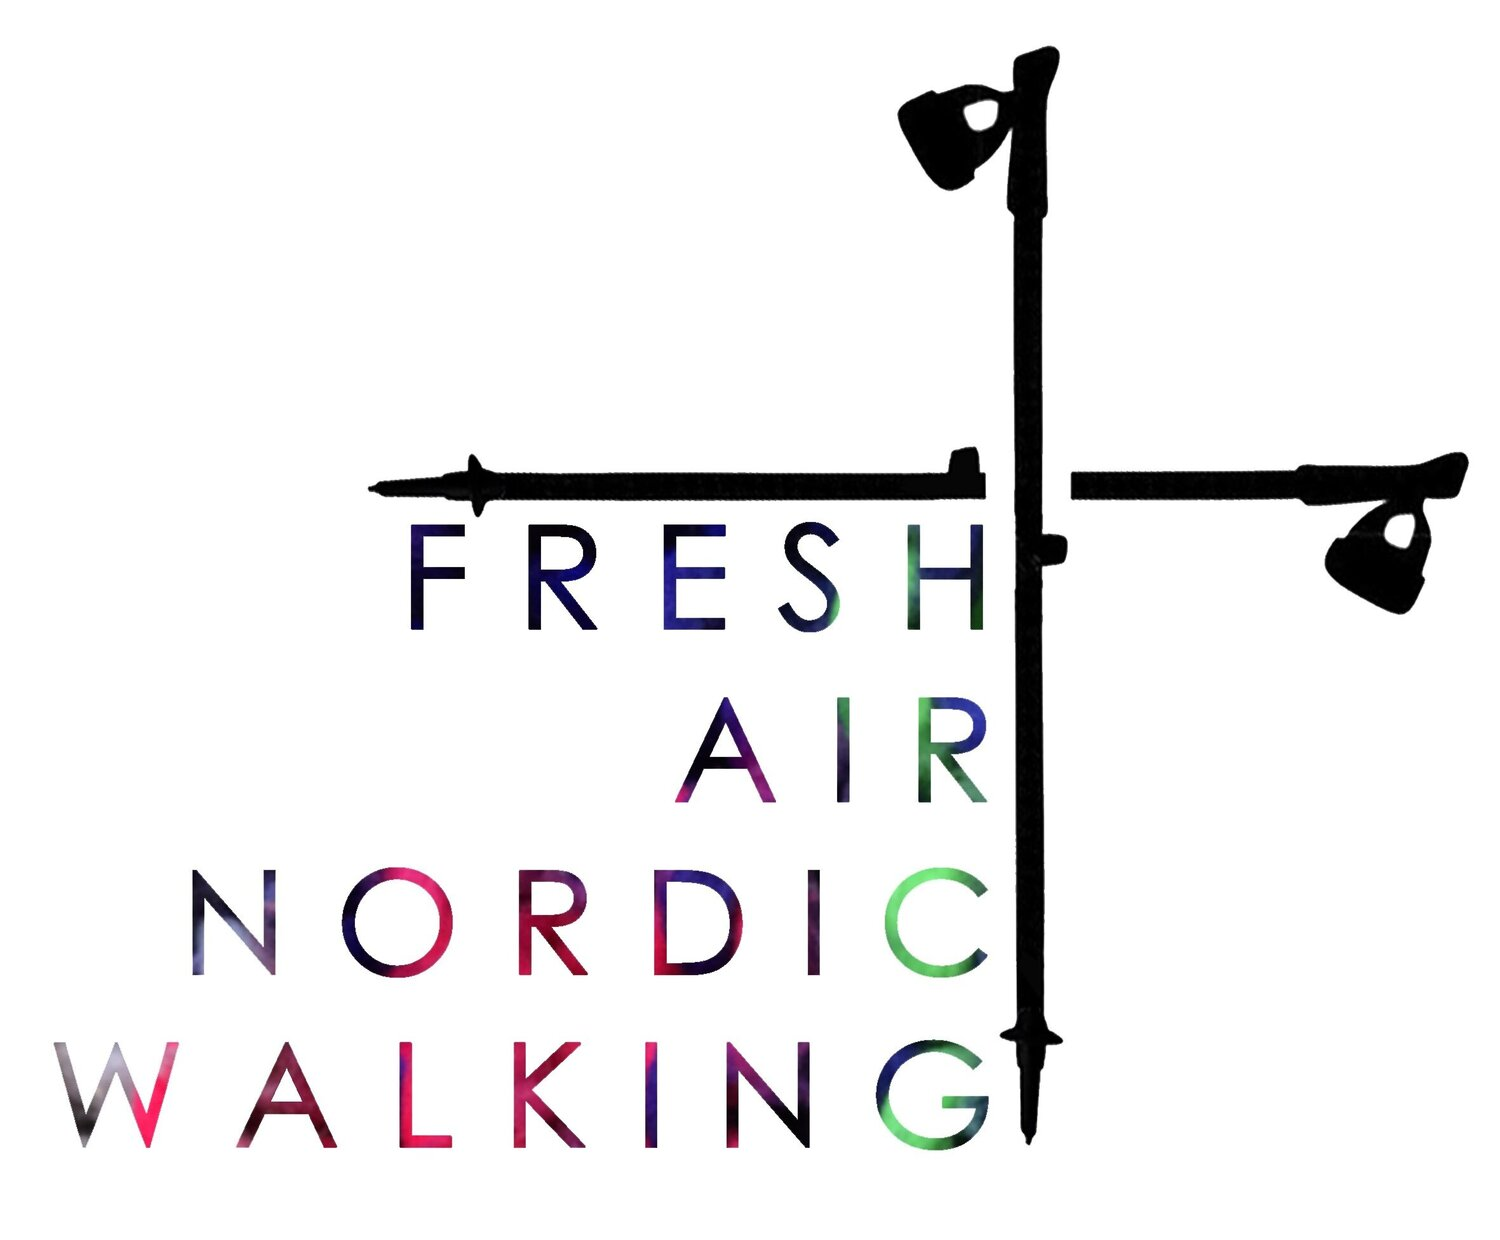 Fresh Air Nordic Walking